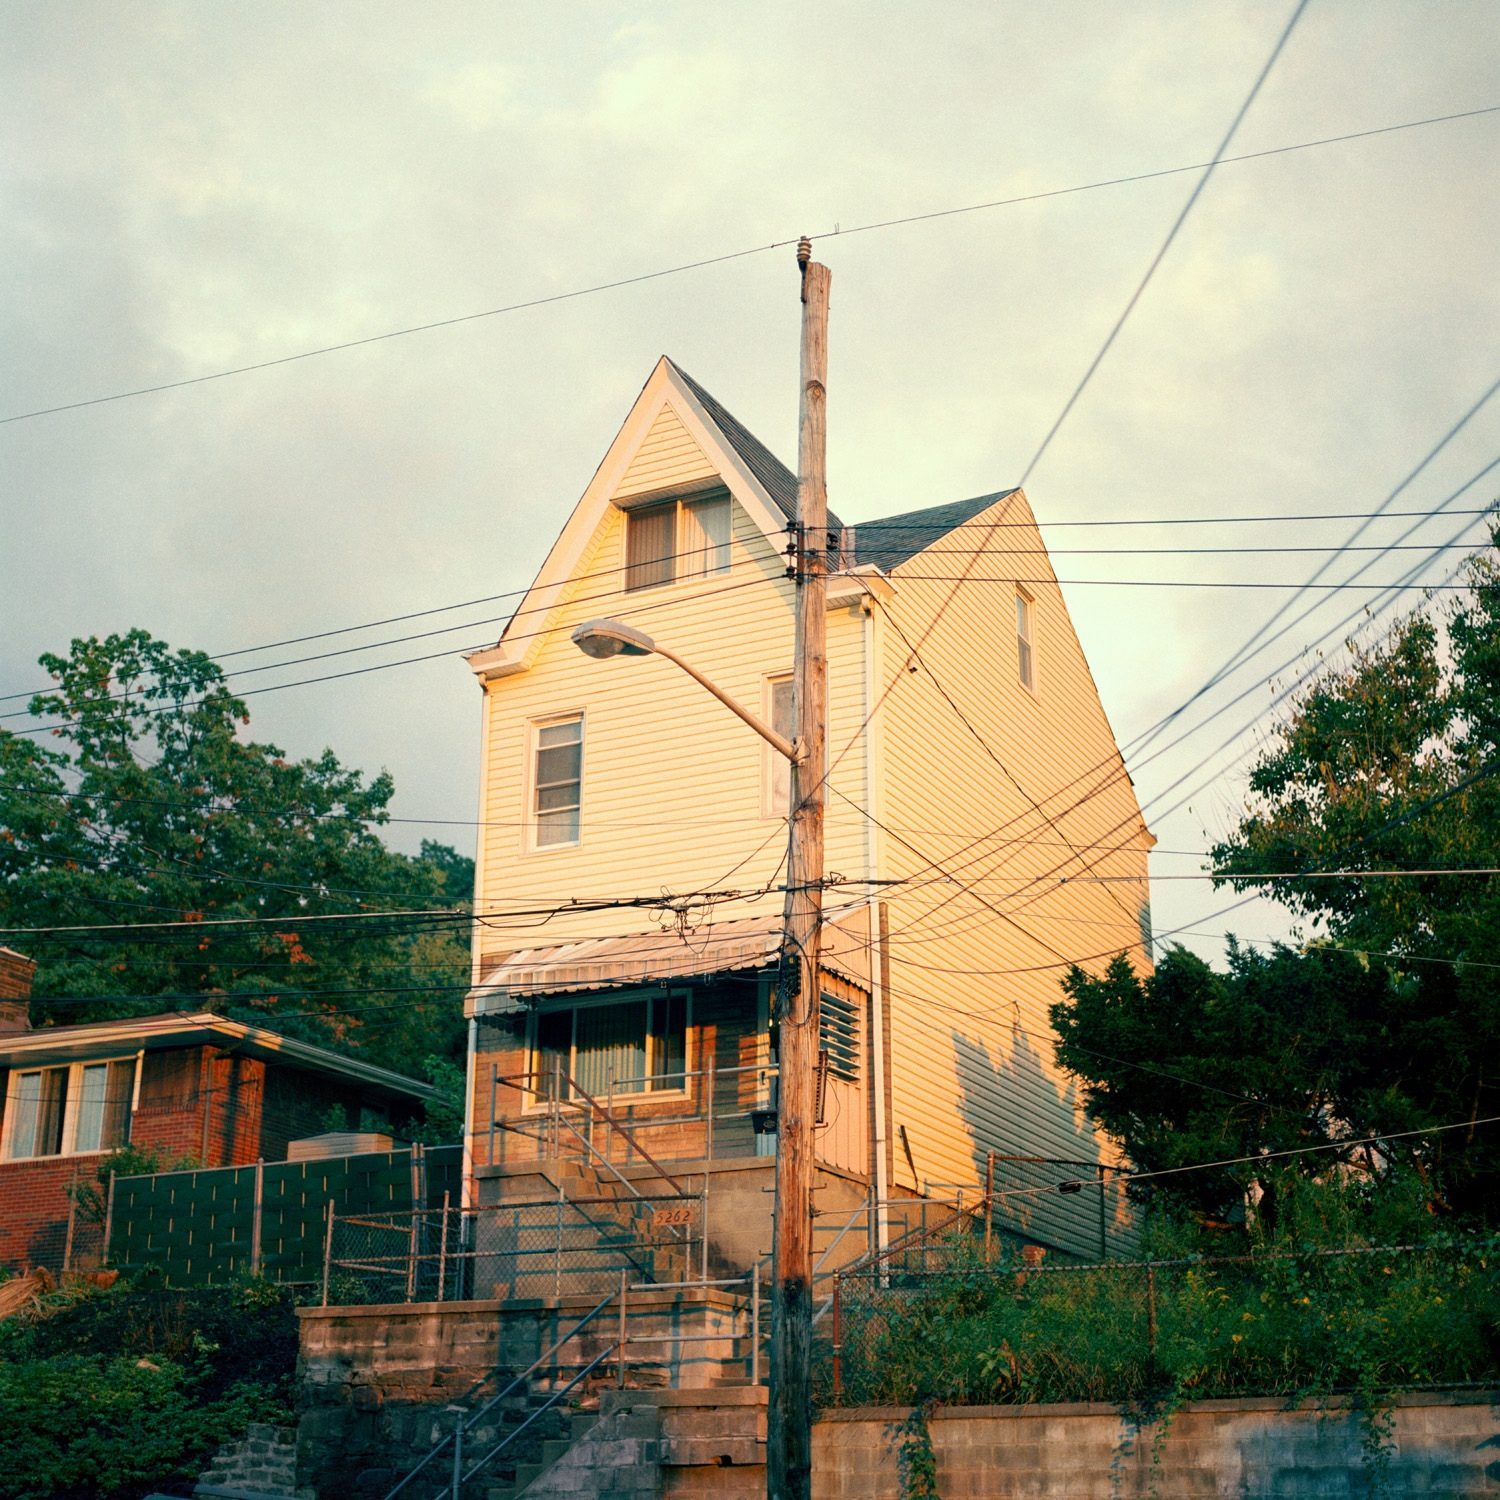 The House Across the Street, Upper Lawrenceville, 2017